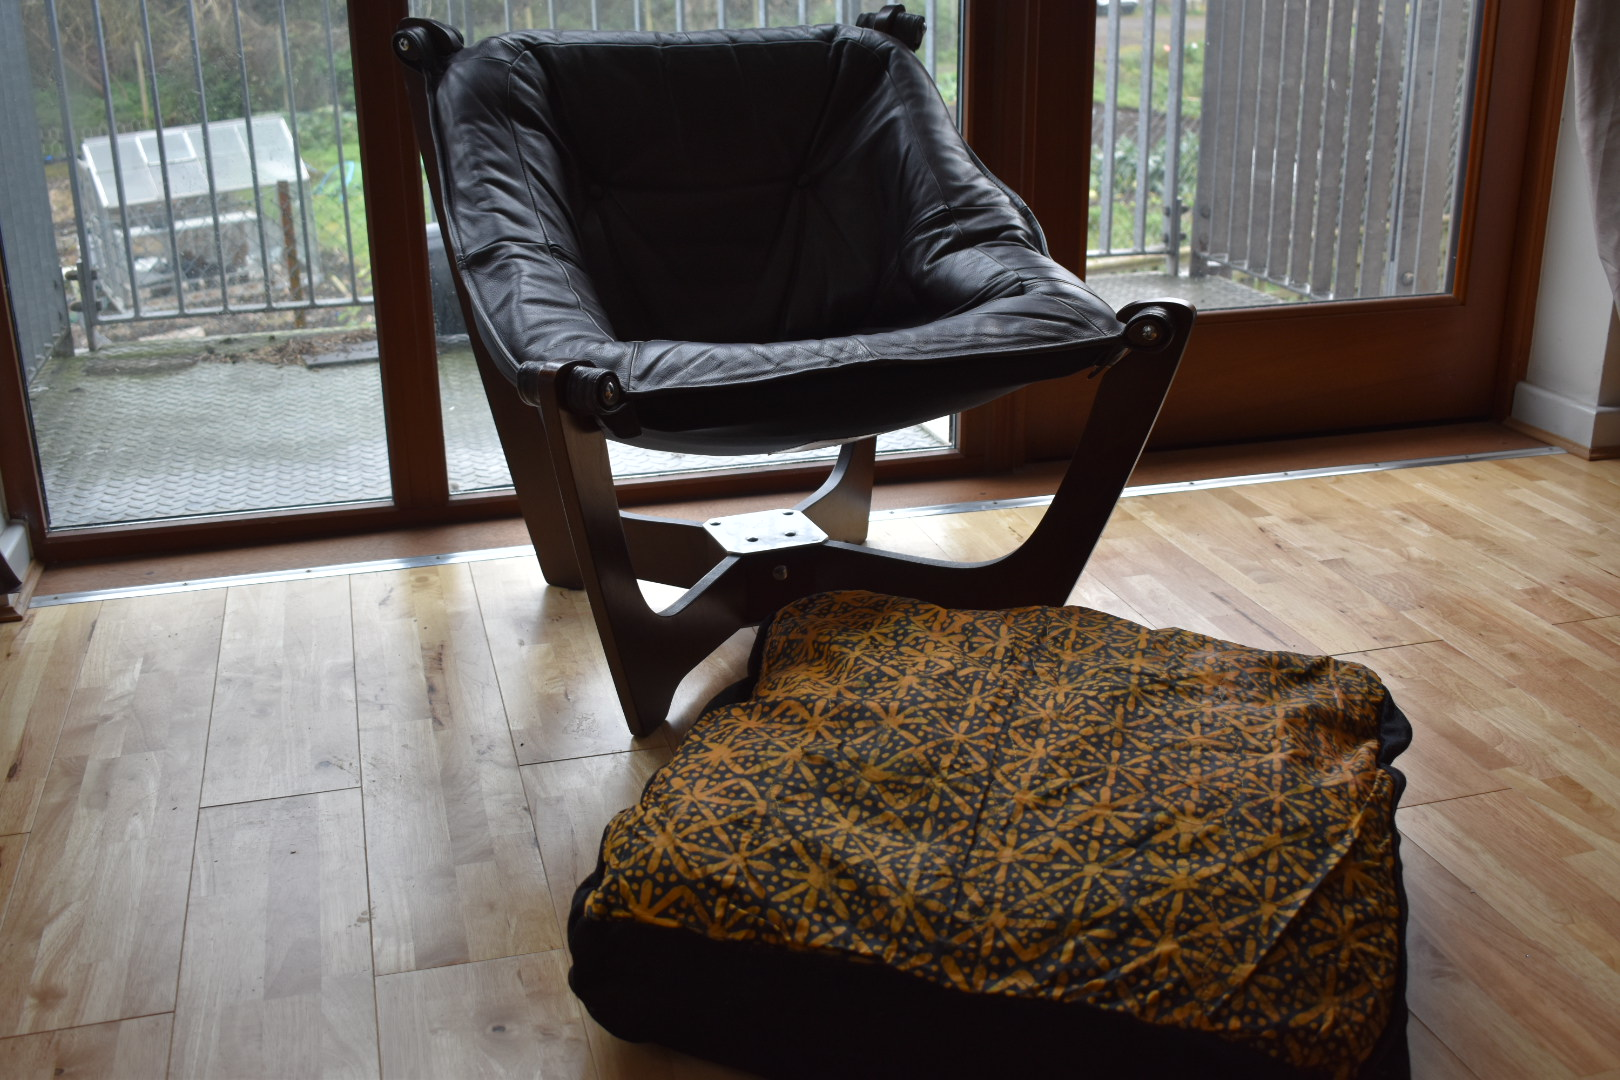 Large adire floor cushion - Cool ochre